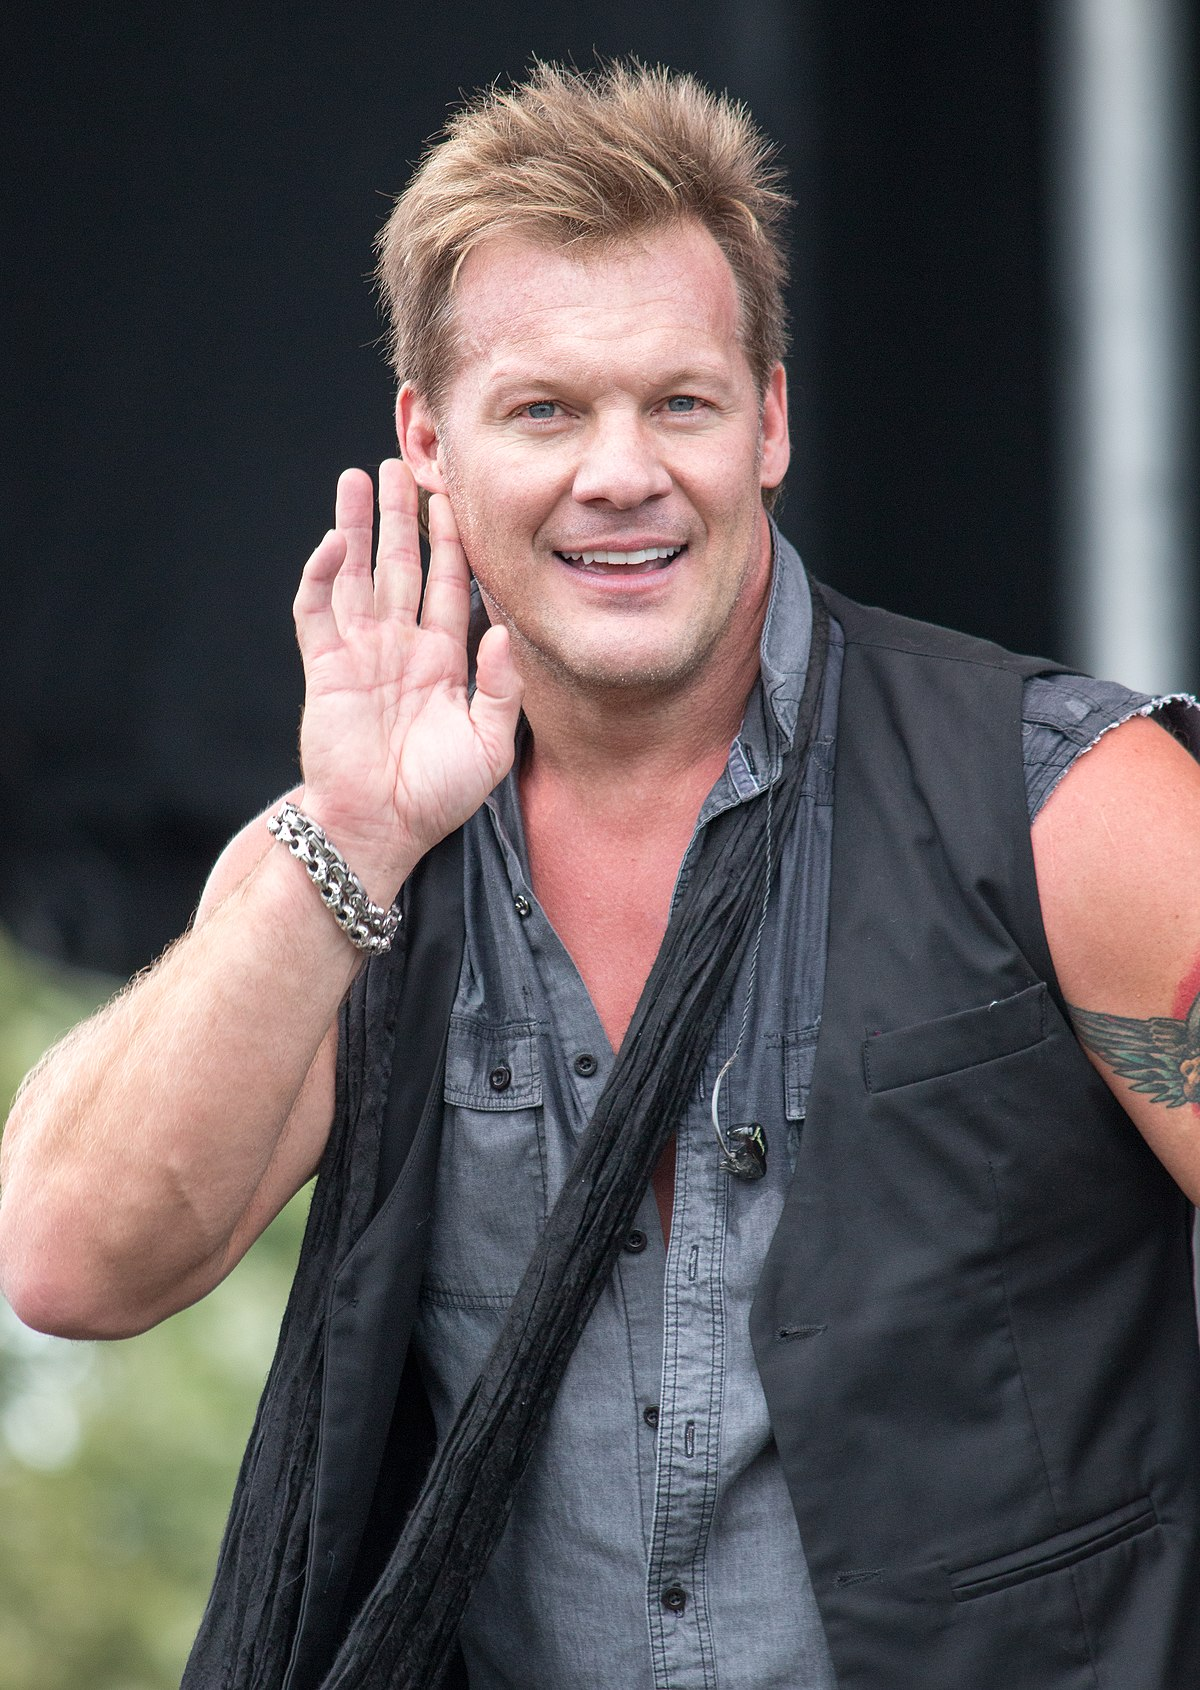 Chris Jericho Wikipedia